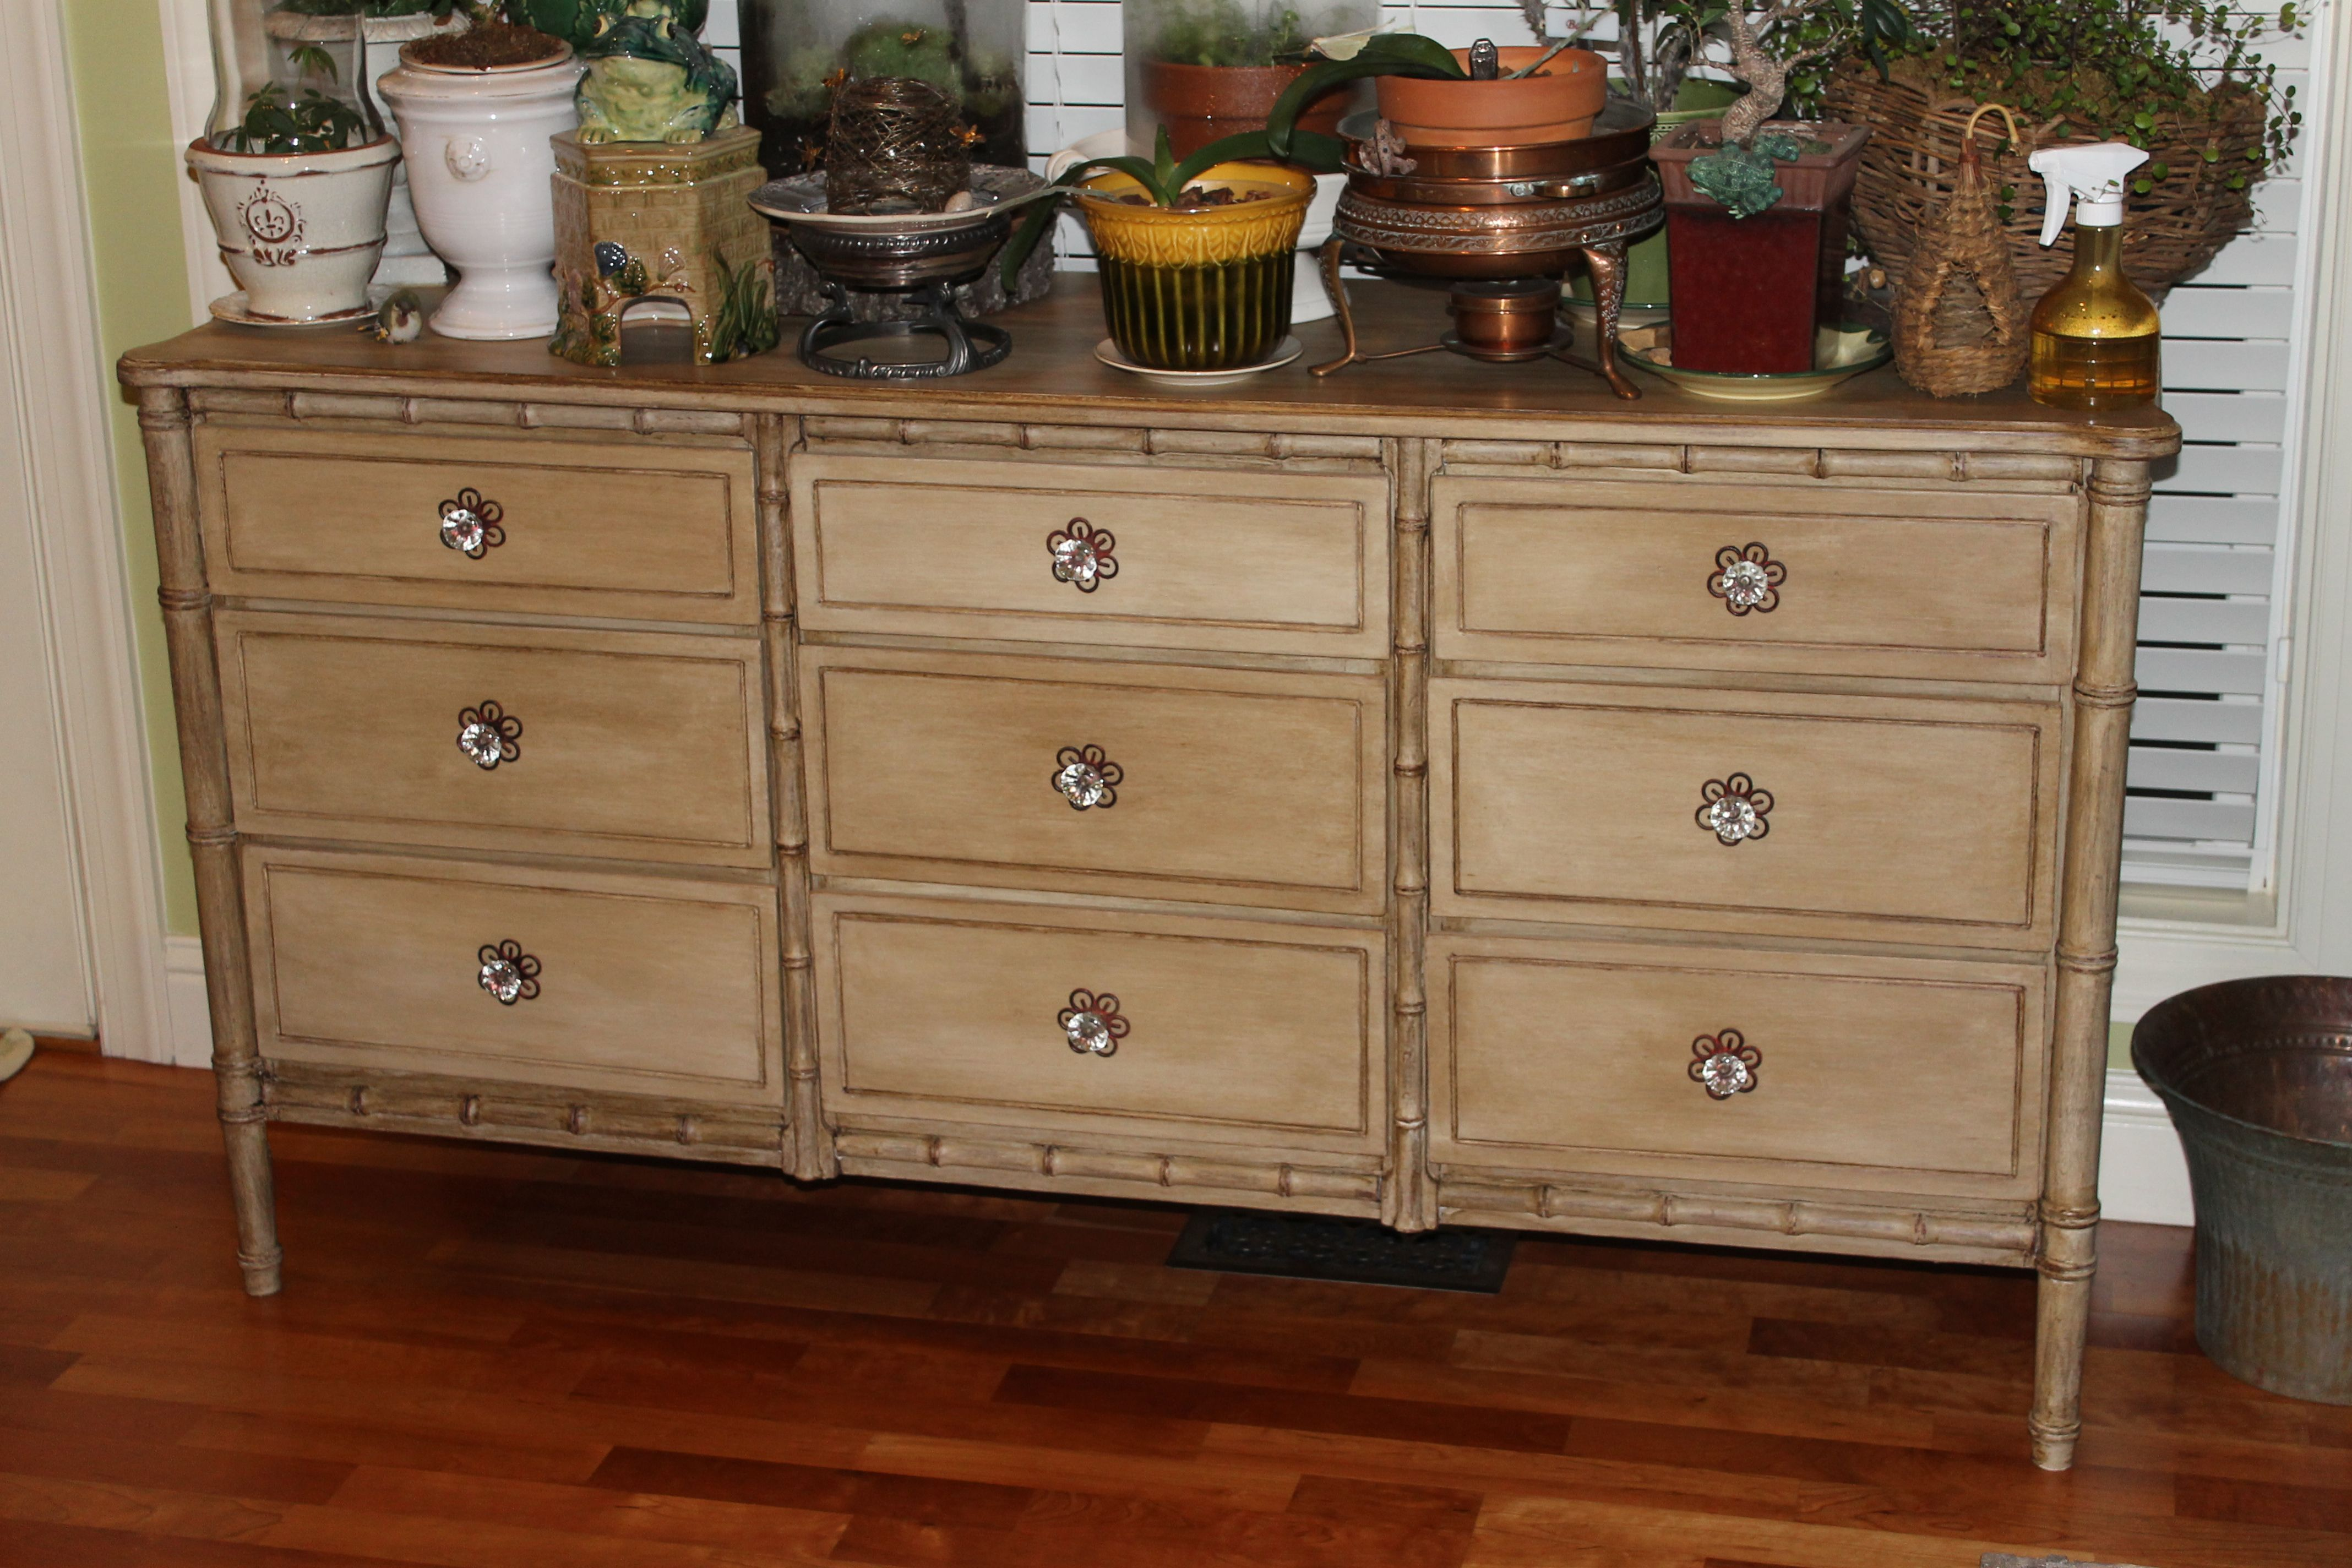 $45 Goodwill find refurbished with Annie Sloan Chalk Paint and new ...